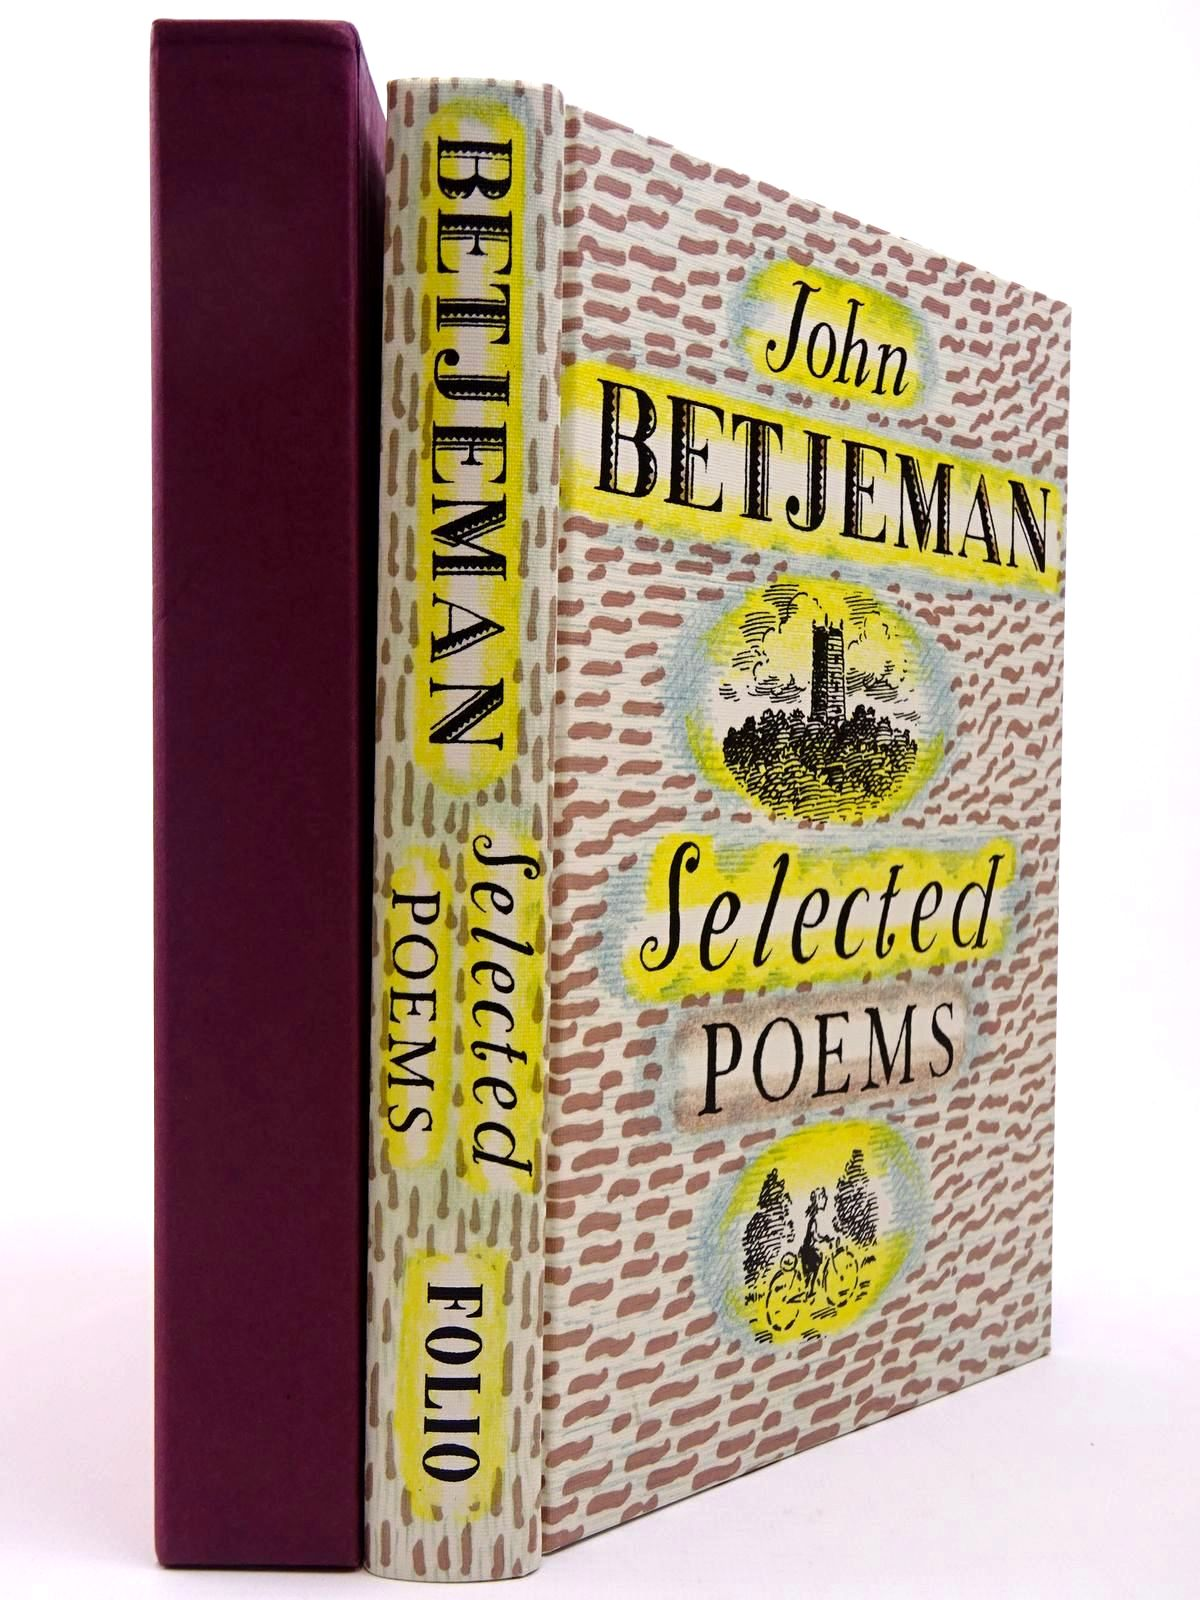 Photo of JOHN BETJEMAN SELECTED POEMS written by Betjeman, John Powers, Alan illustrated by Bailey, Peter published by Folio Society (STOCK CODE: 2129708)  for sale by Stella & Rose's Books